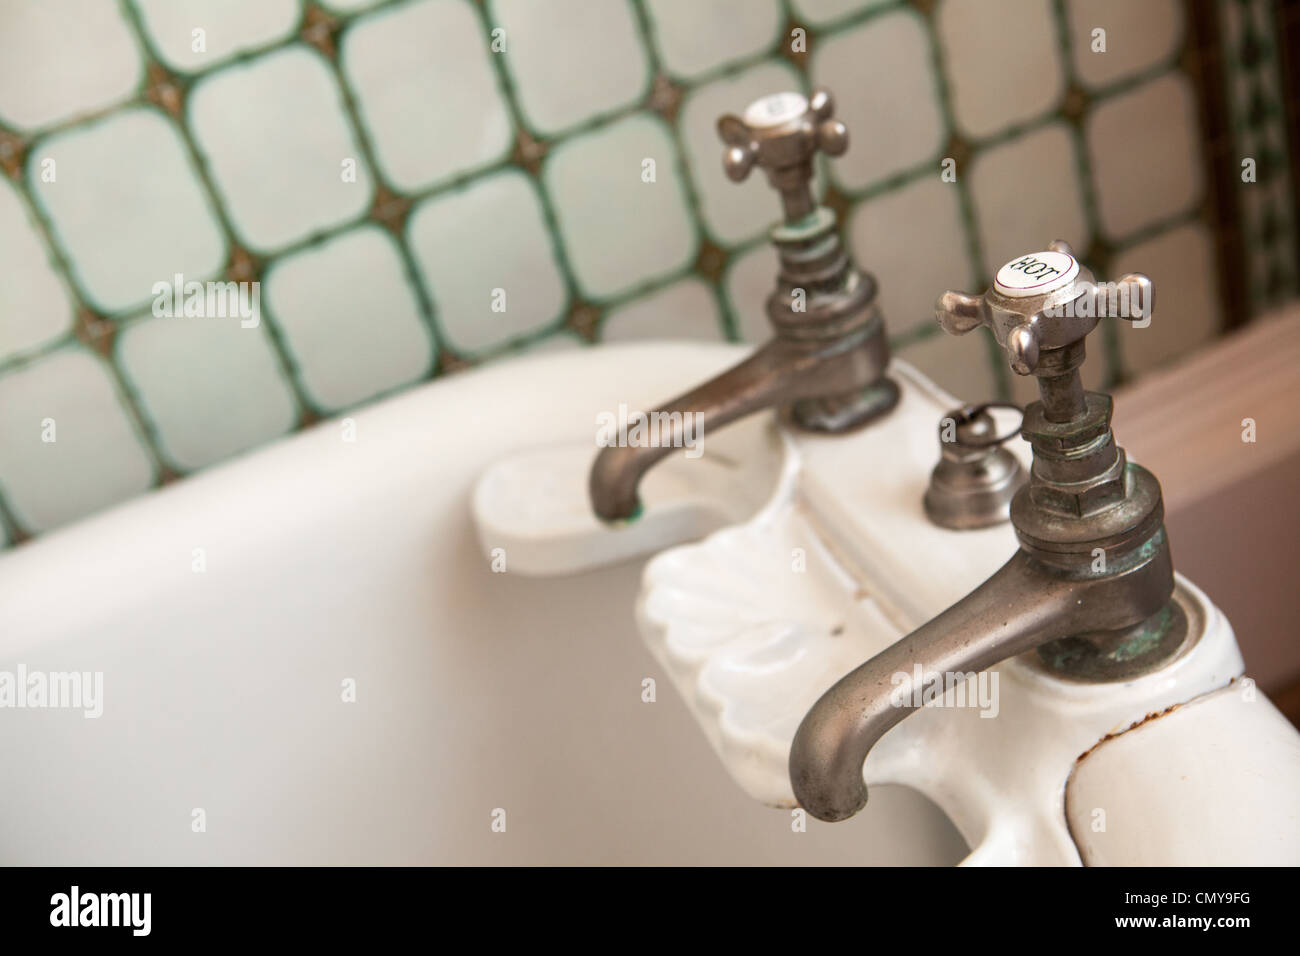 Hot And Cold Taps Stockfotos & Hot And Cold Taps Bilder - Alamy